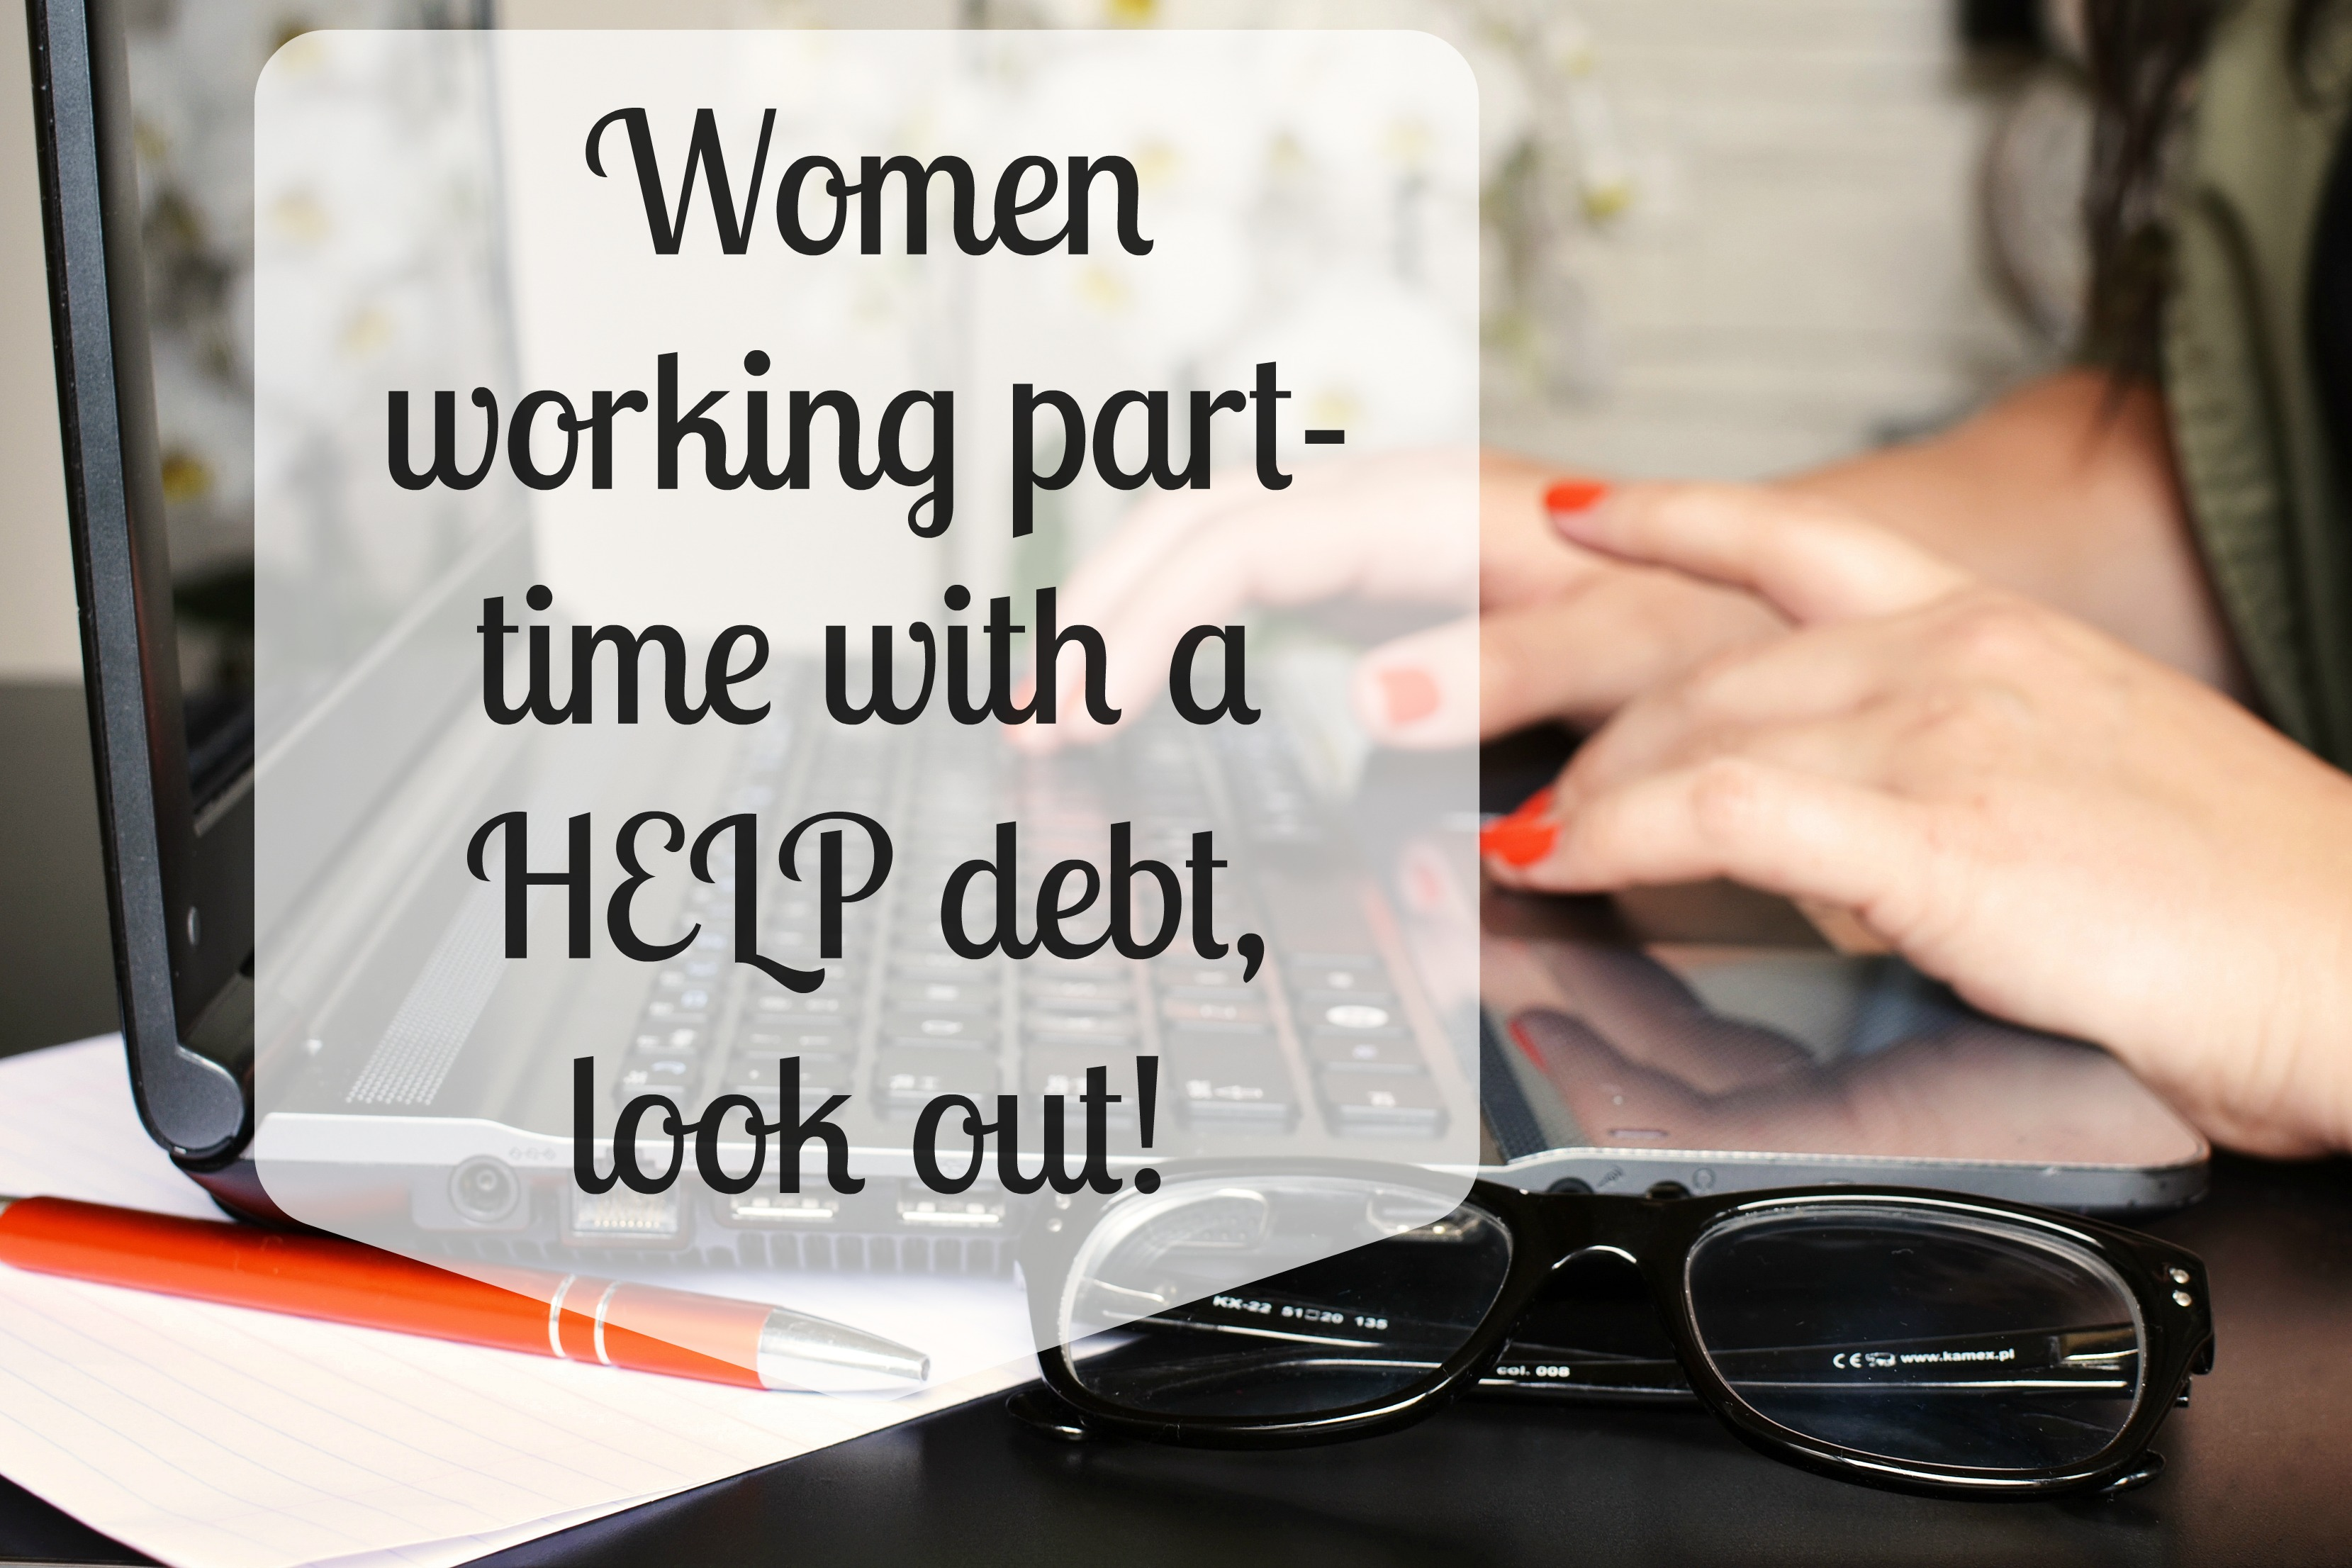 Women working part-time with a HELP debt, look out